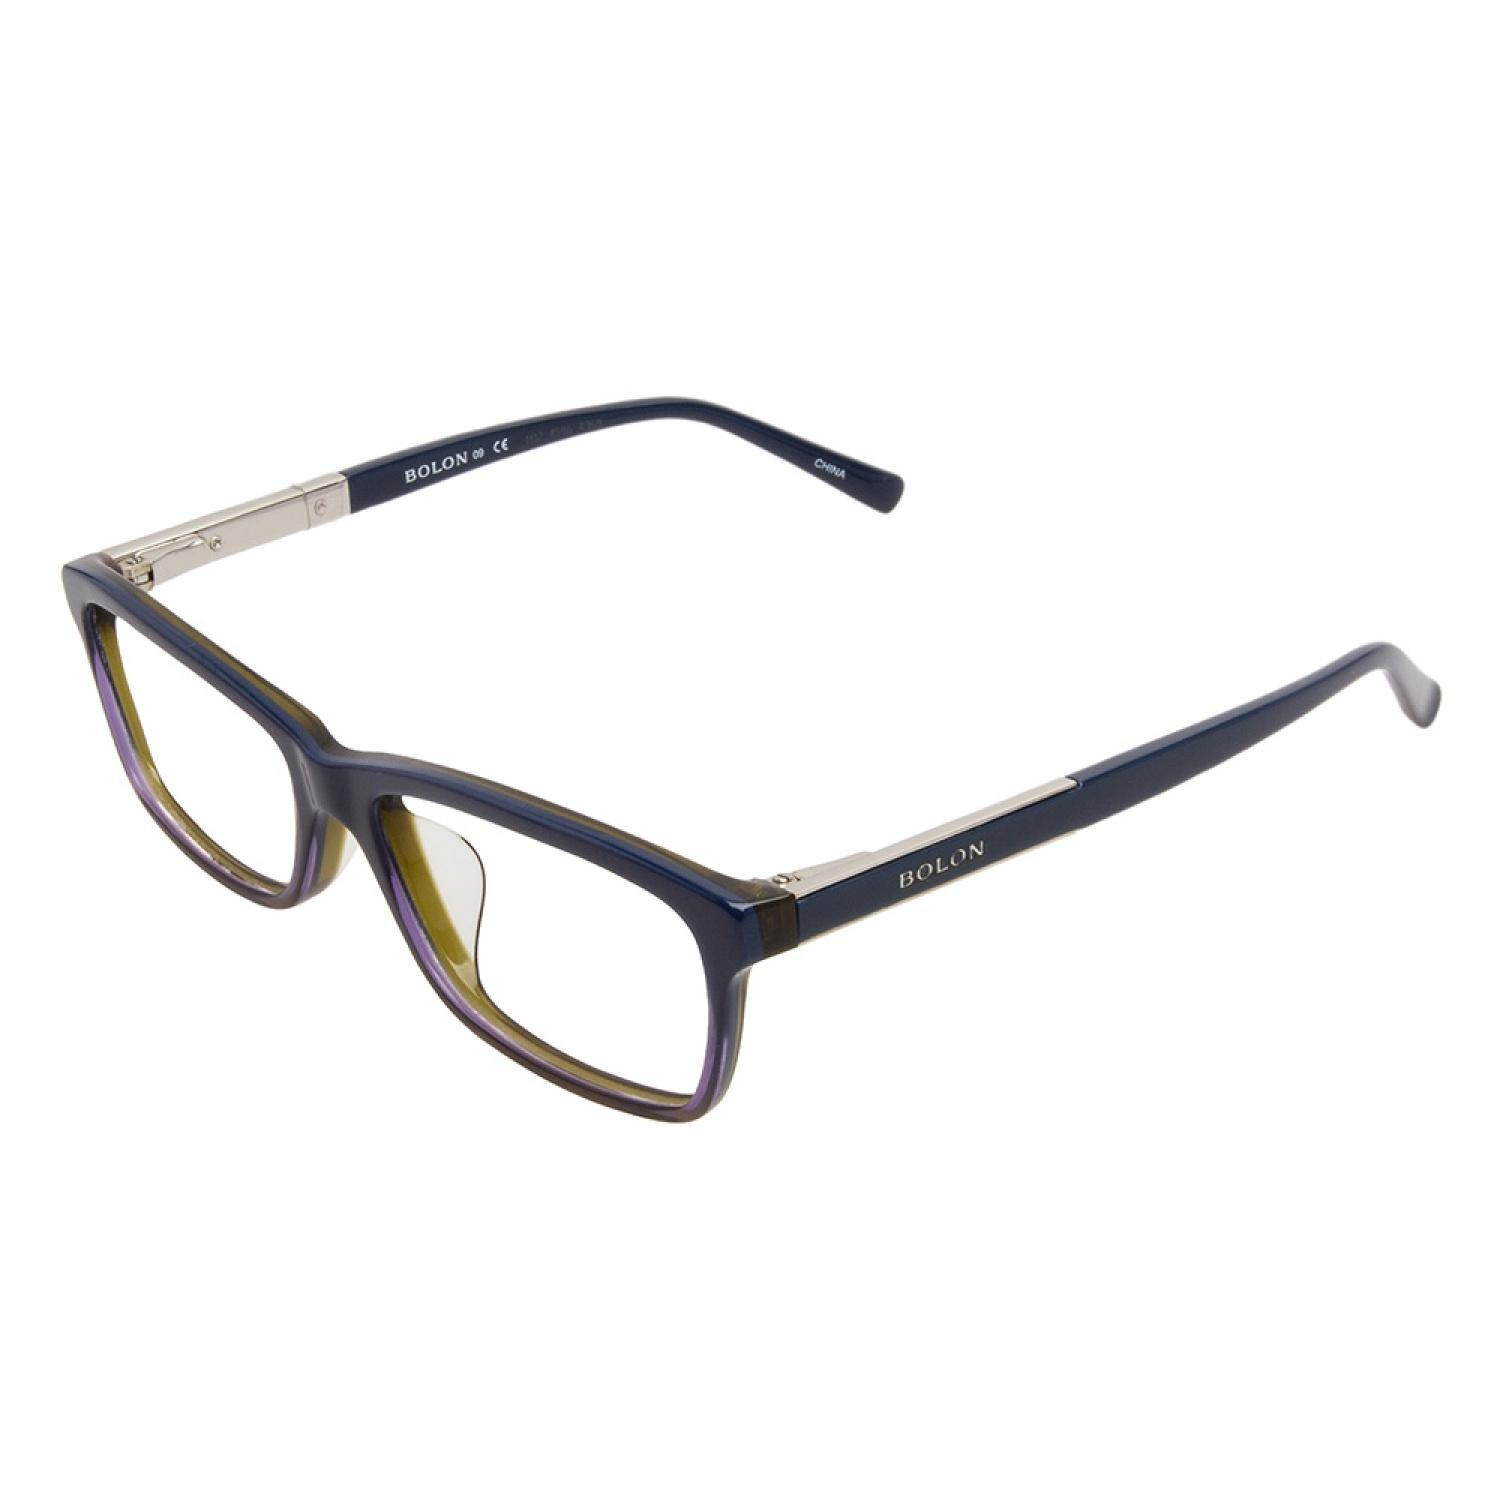 780e1d0aec Shop Bolon BJ1144 P05 Navy Prescription Eyeglasses - Free Shipping ...